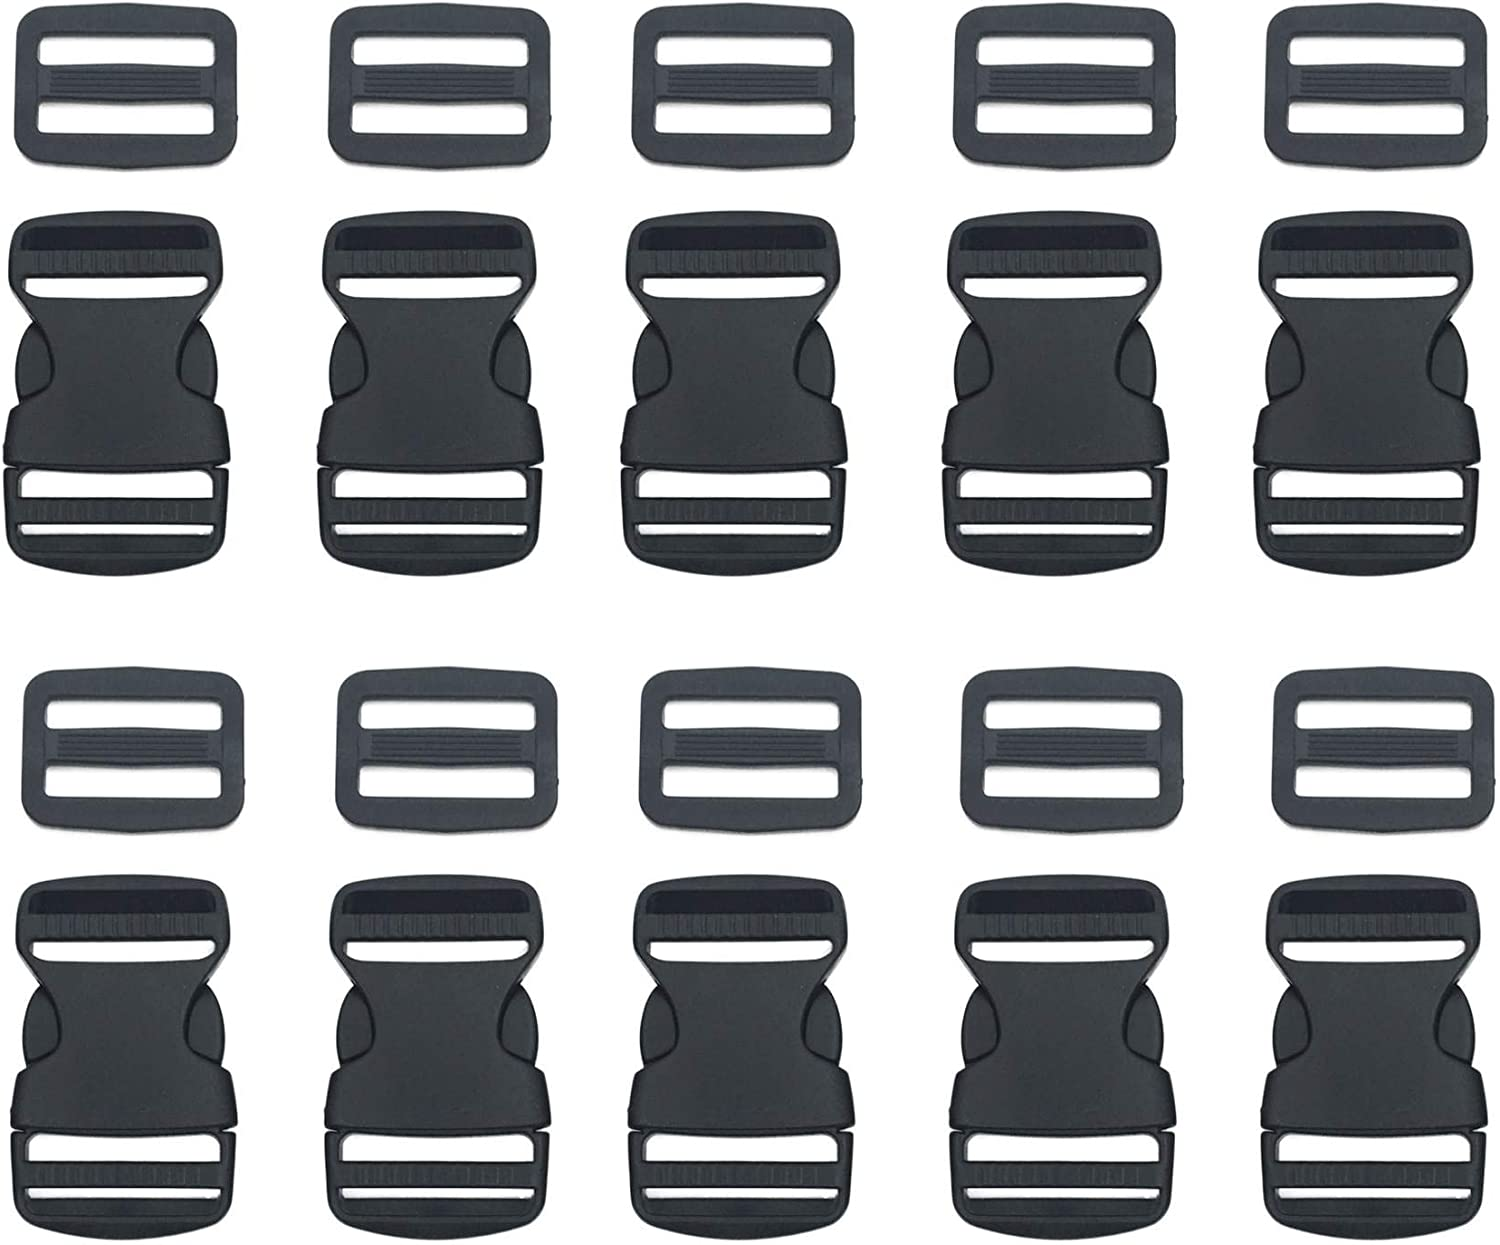 """EesTeck 10 Set 1 Inch Flat Dual Adjustable Plastic Quick Side Release Plastic Buckles and Tri-Glide Slides for Luggage Straps Pet Collar Backpack Repairing (Black, Fit for 1""""/25mm Webbing Straps)"""